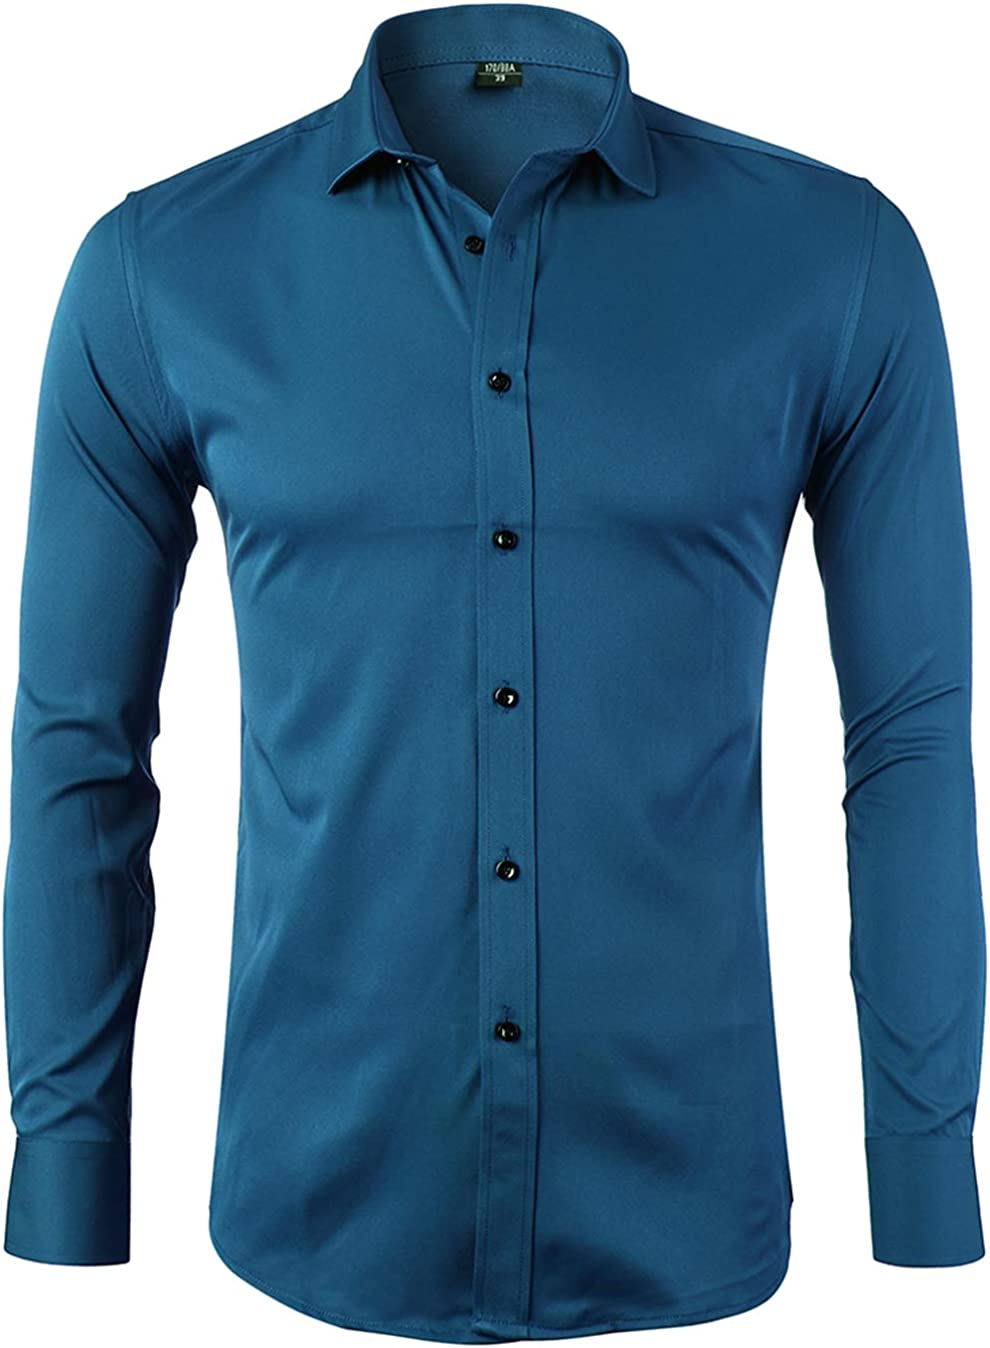 Slim Fit Long Sleeves Elastic Bamboo Fiber Button Down Shirts FLY HAWK Mens Dress Shirts